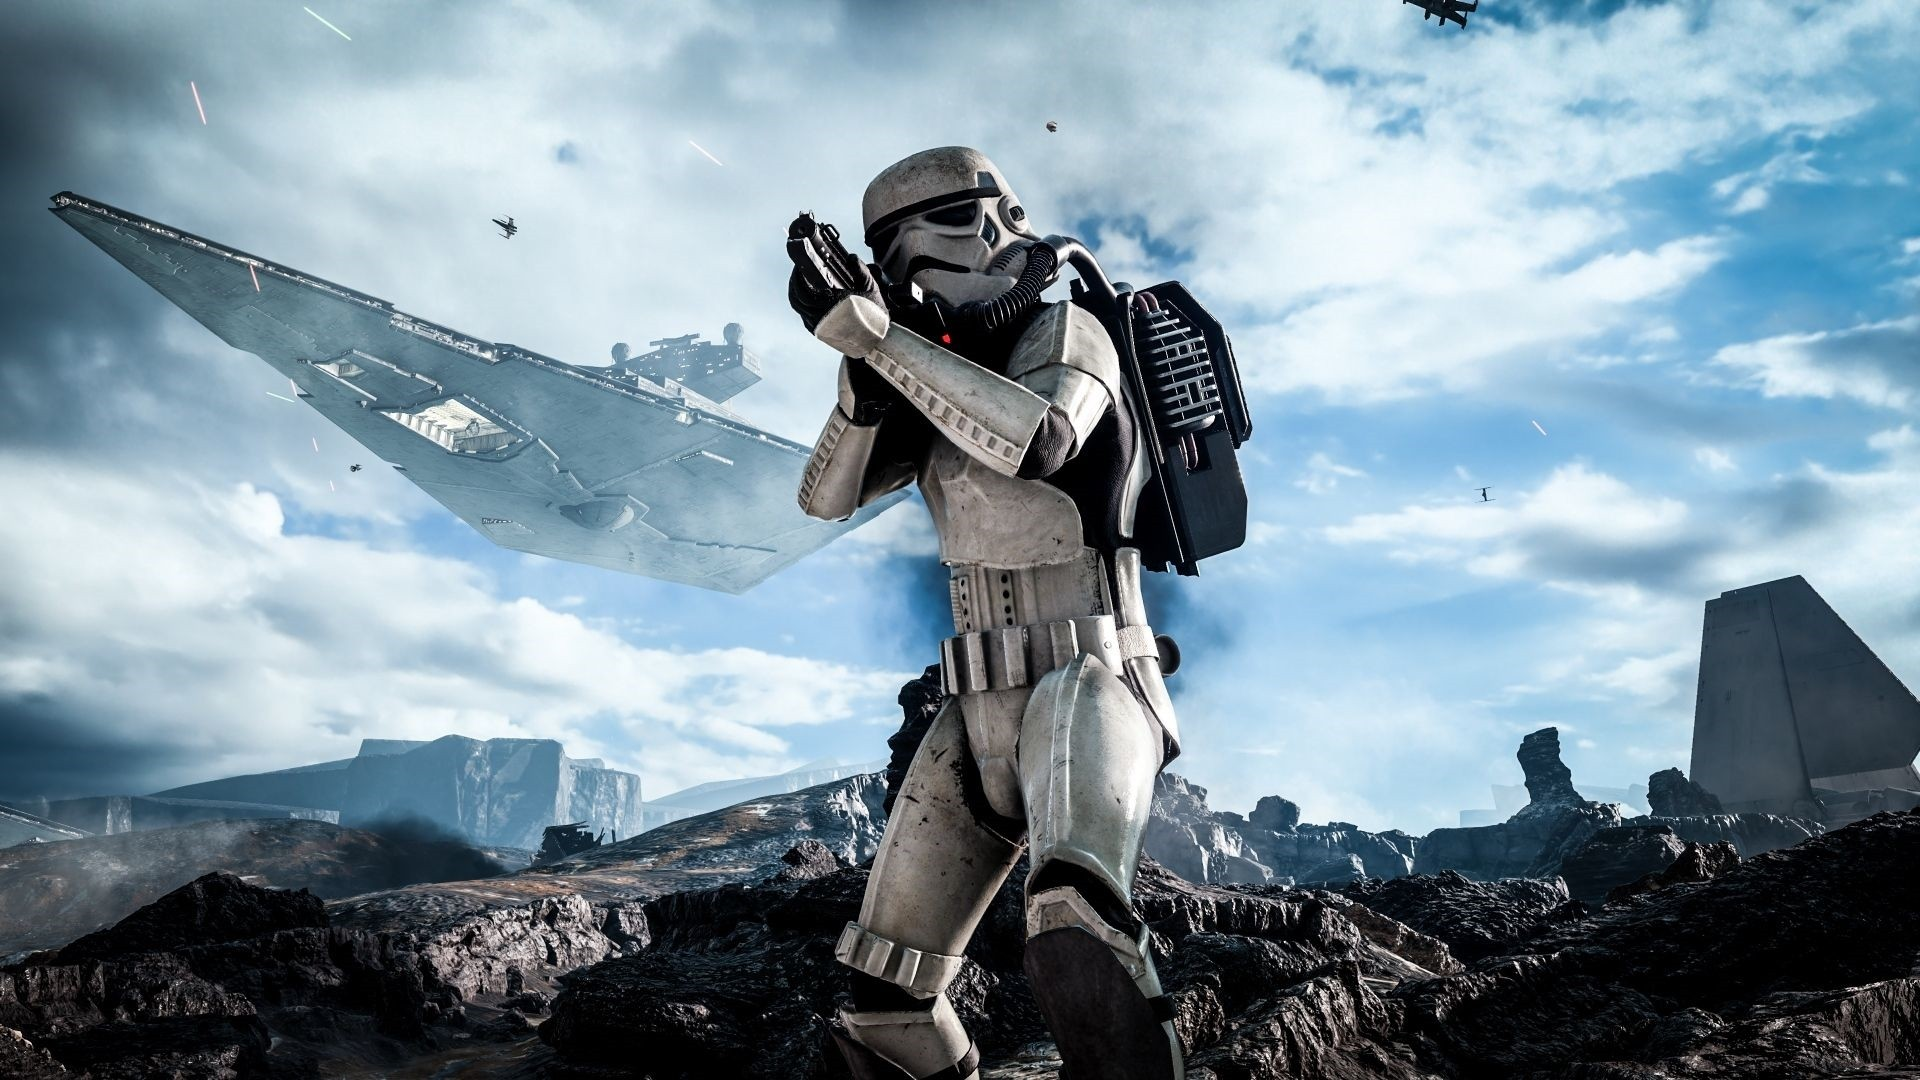 Stormtrooper Free Wallpaper and Background